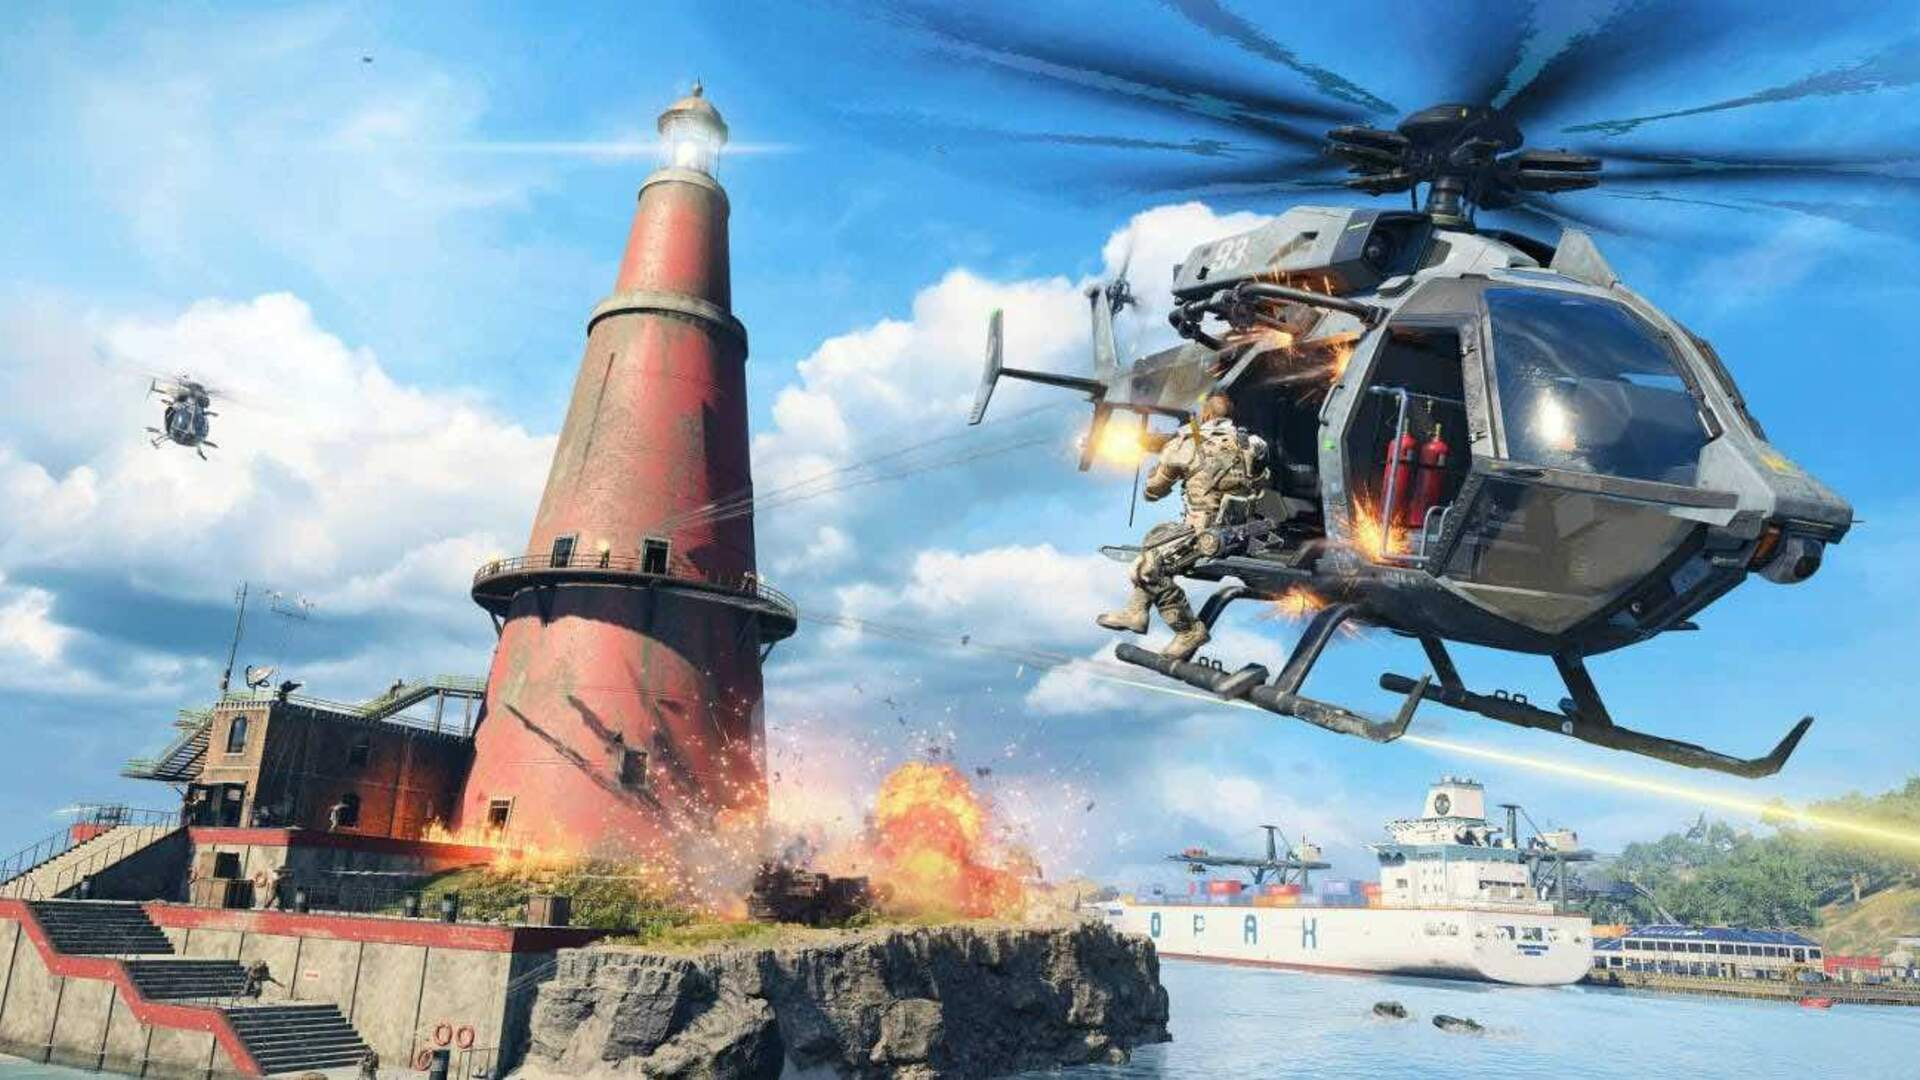 Treyarch is Adding a Fix For Call of Duty Blackout's Item Pickup Issue, But There's a Catch